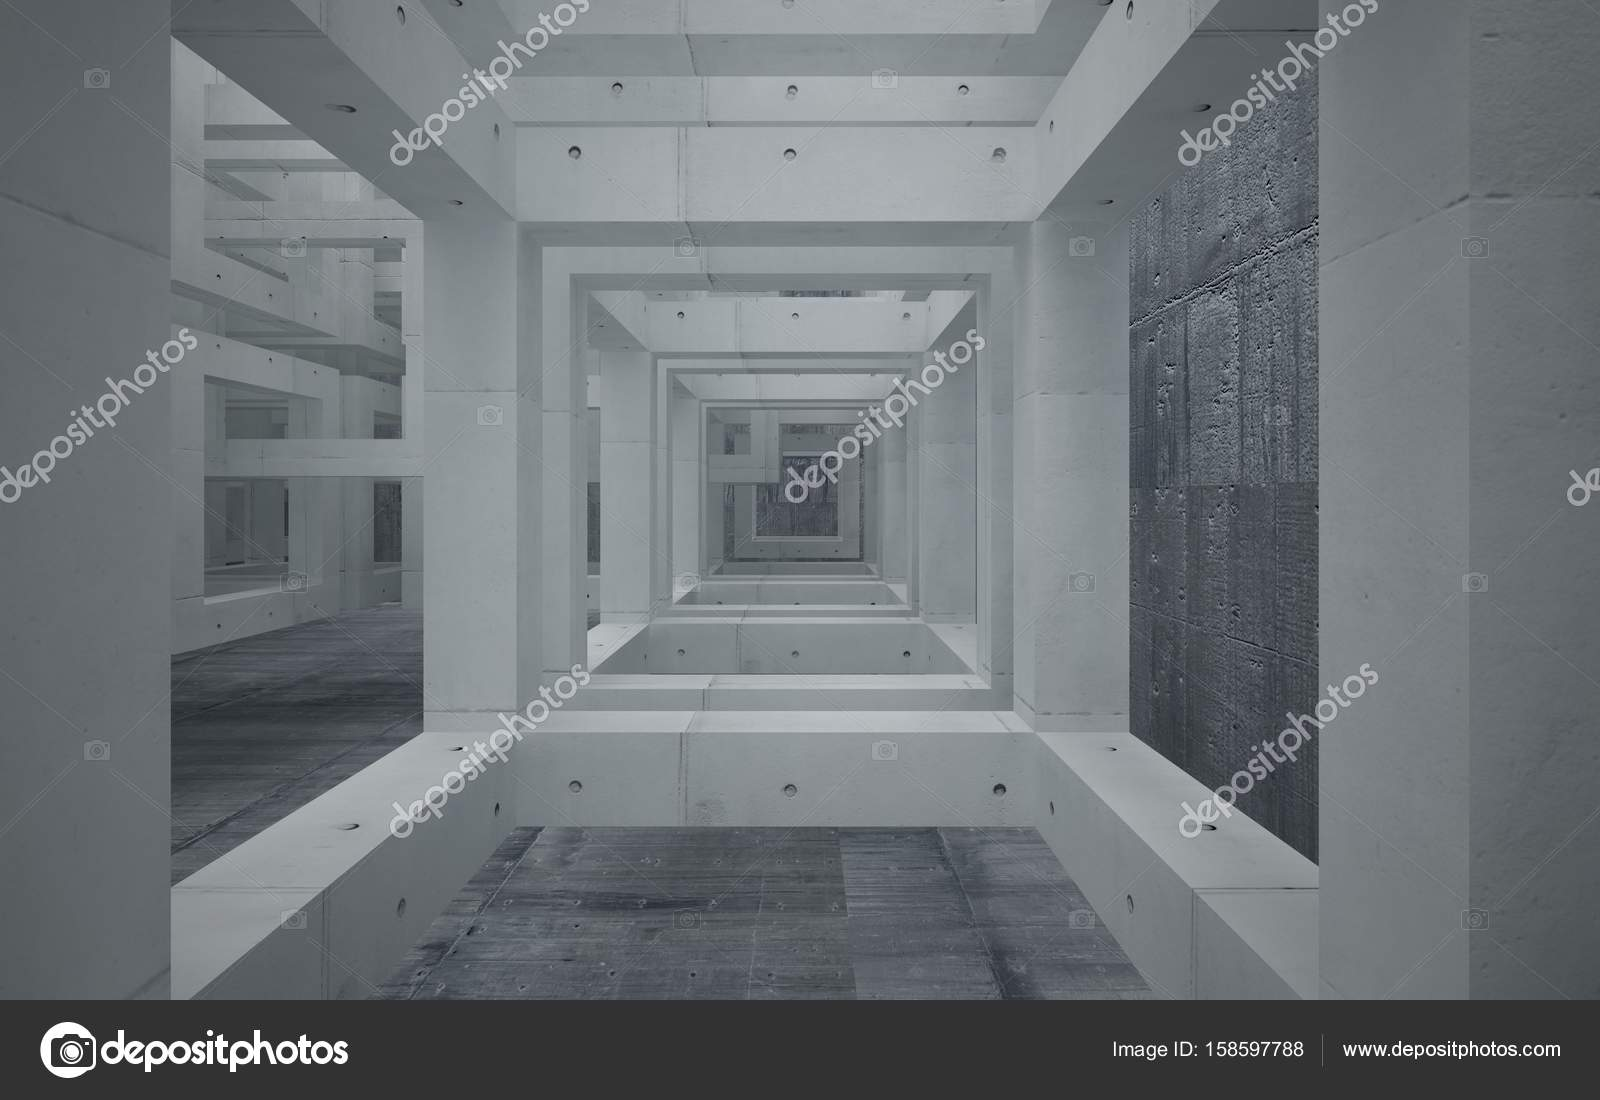 Abstract background buildings — Stock Photo © sergeymansurov